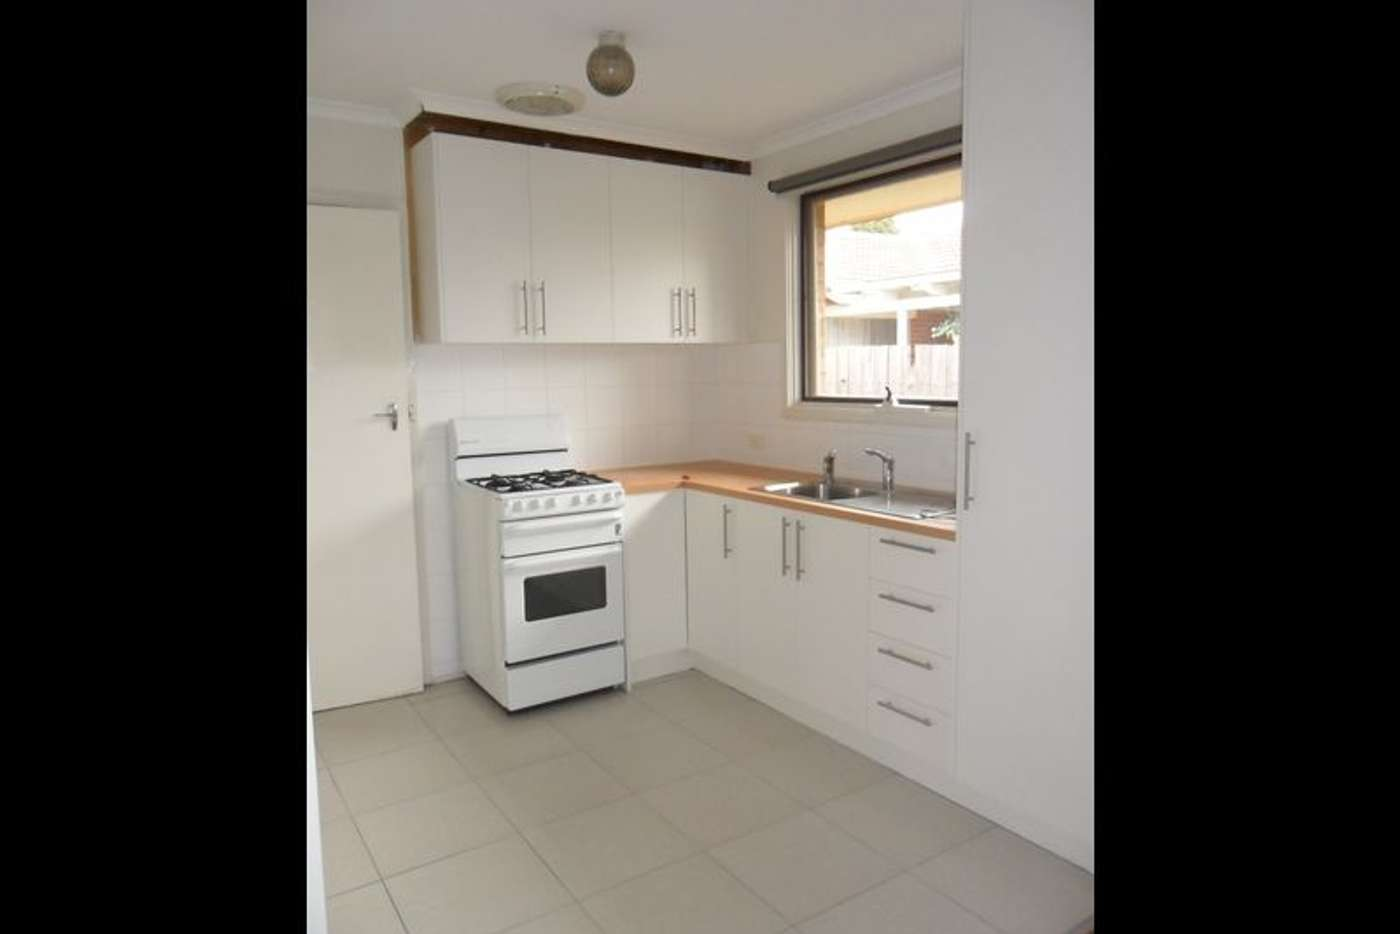 Seventh view of Homely house listing, 4 Filer Court, Keysborough VIC 3173